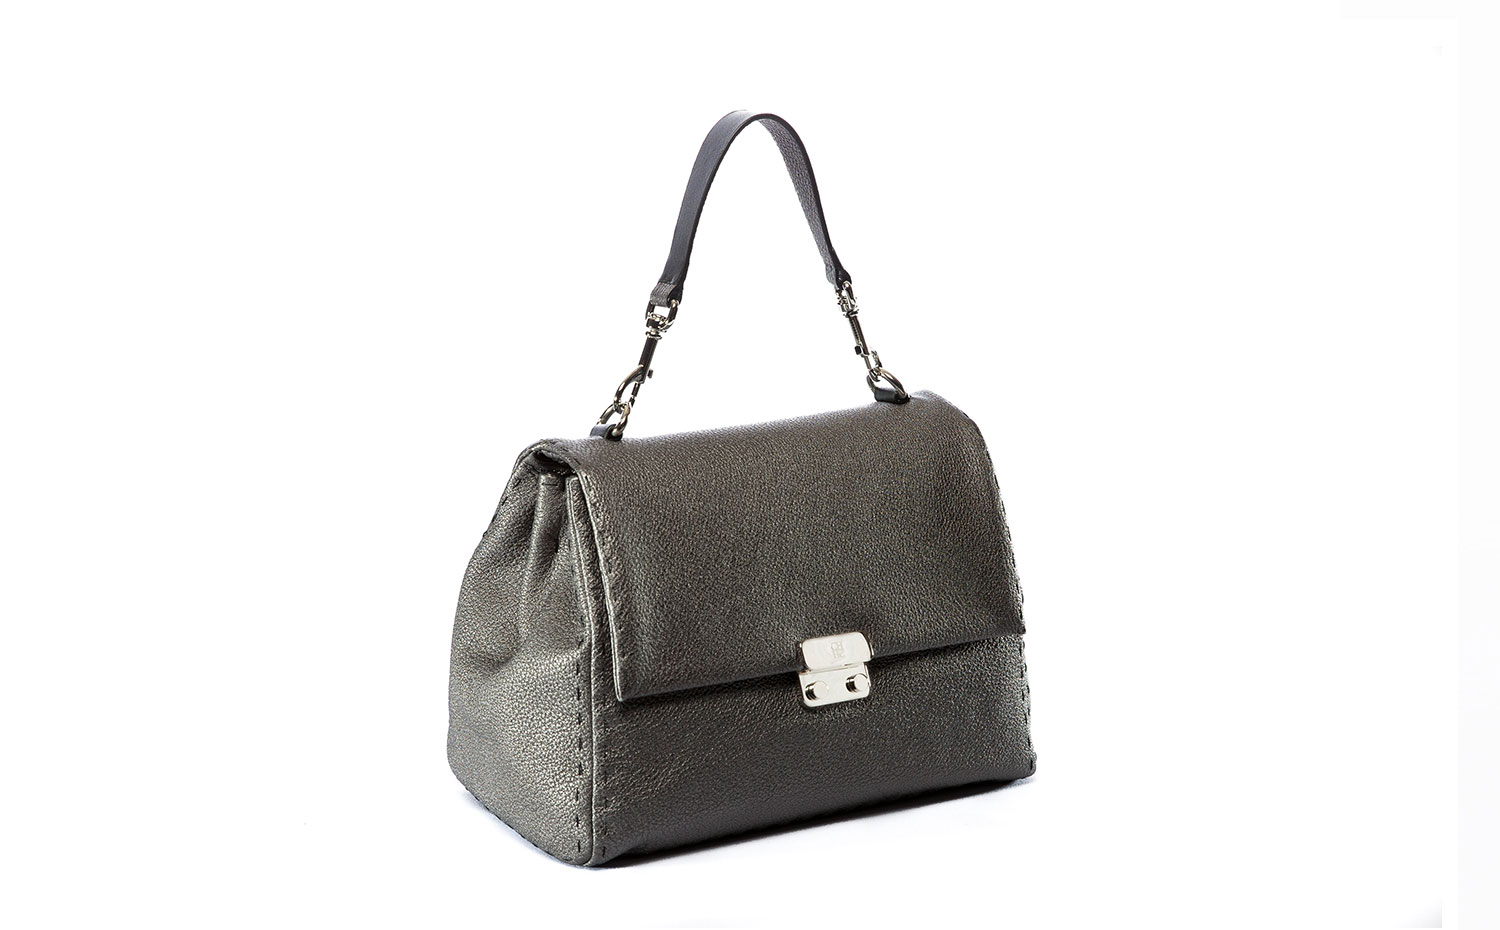 CH Carolina Herrera: Baret Bag in Gunmetal